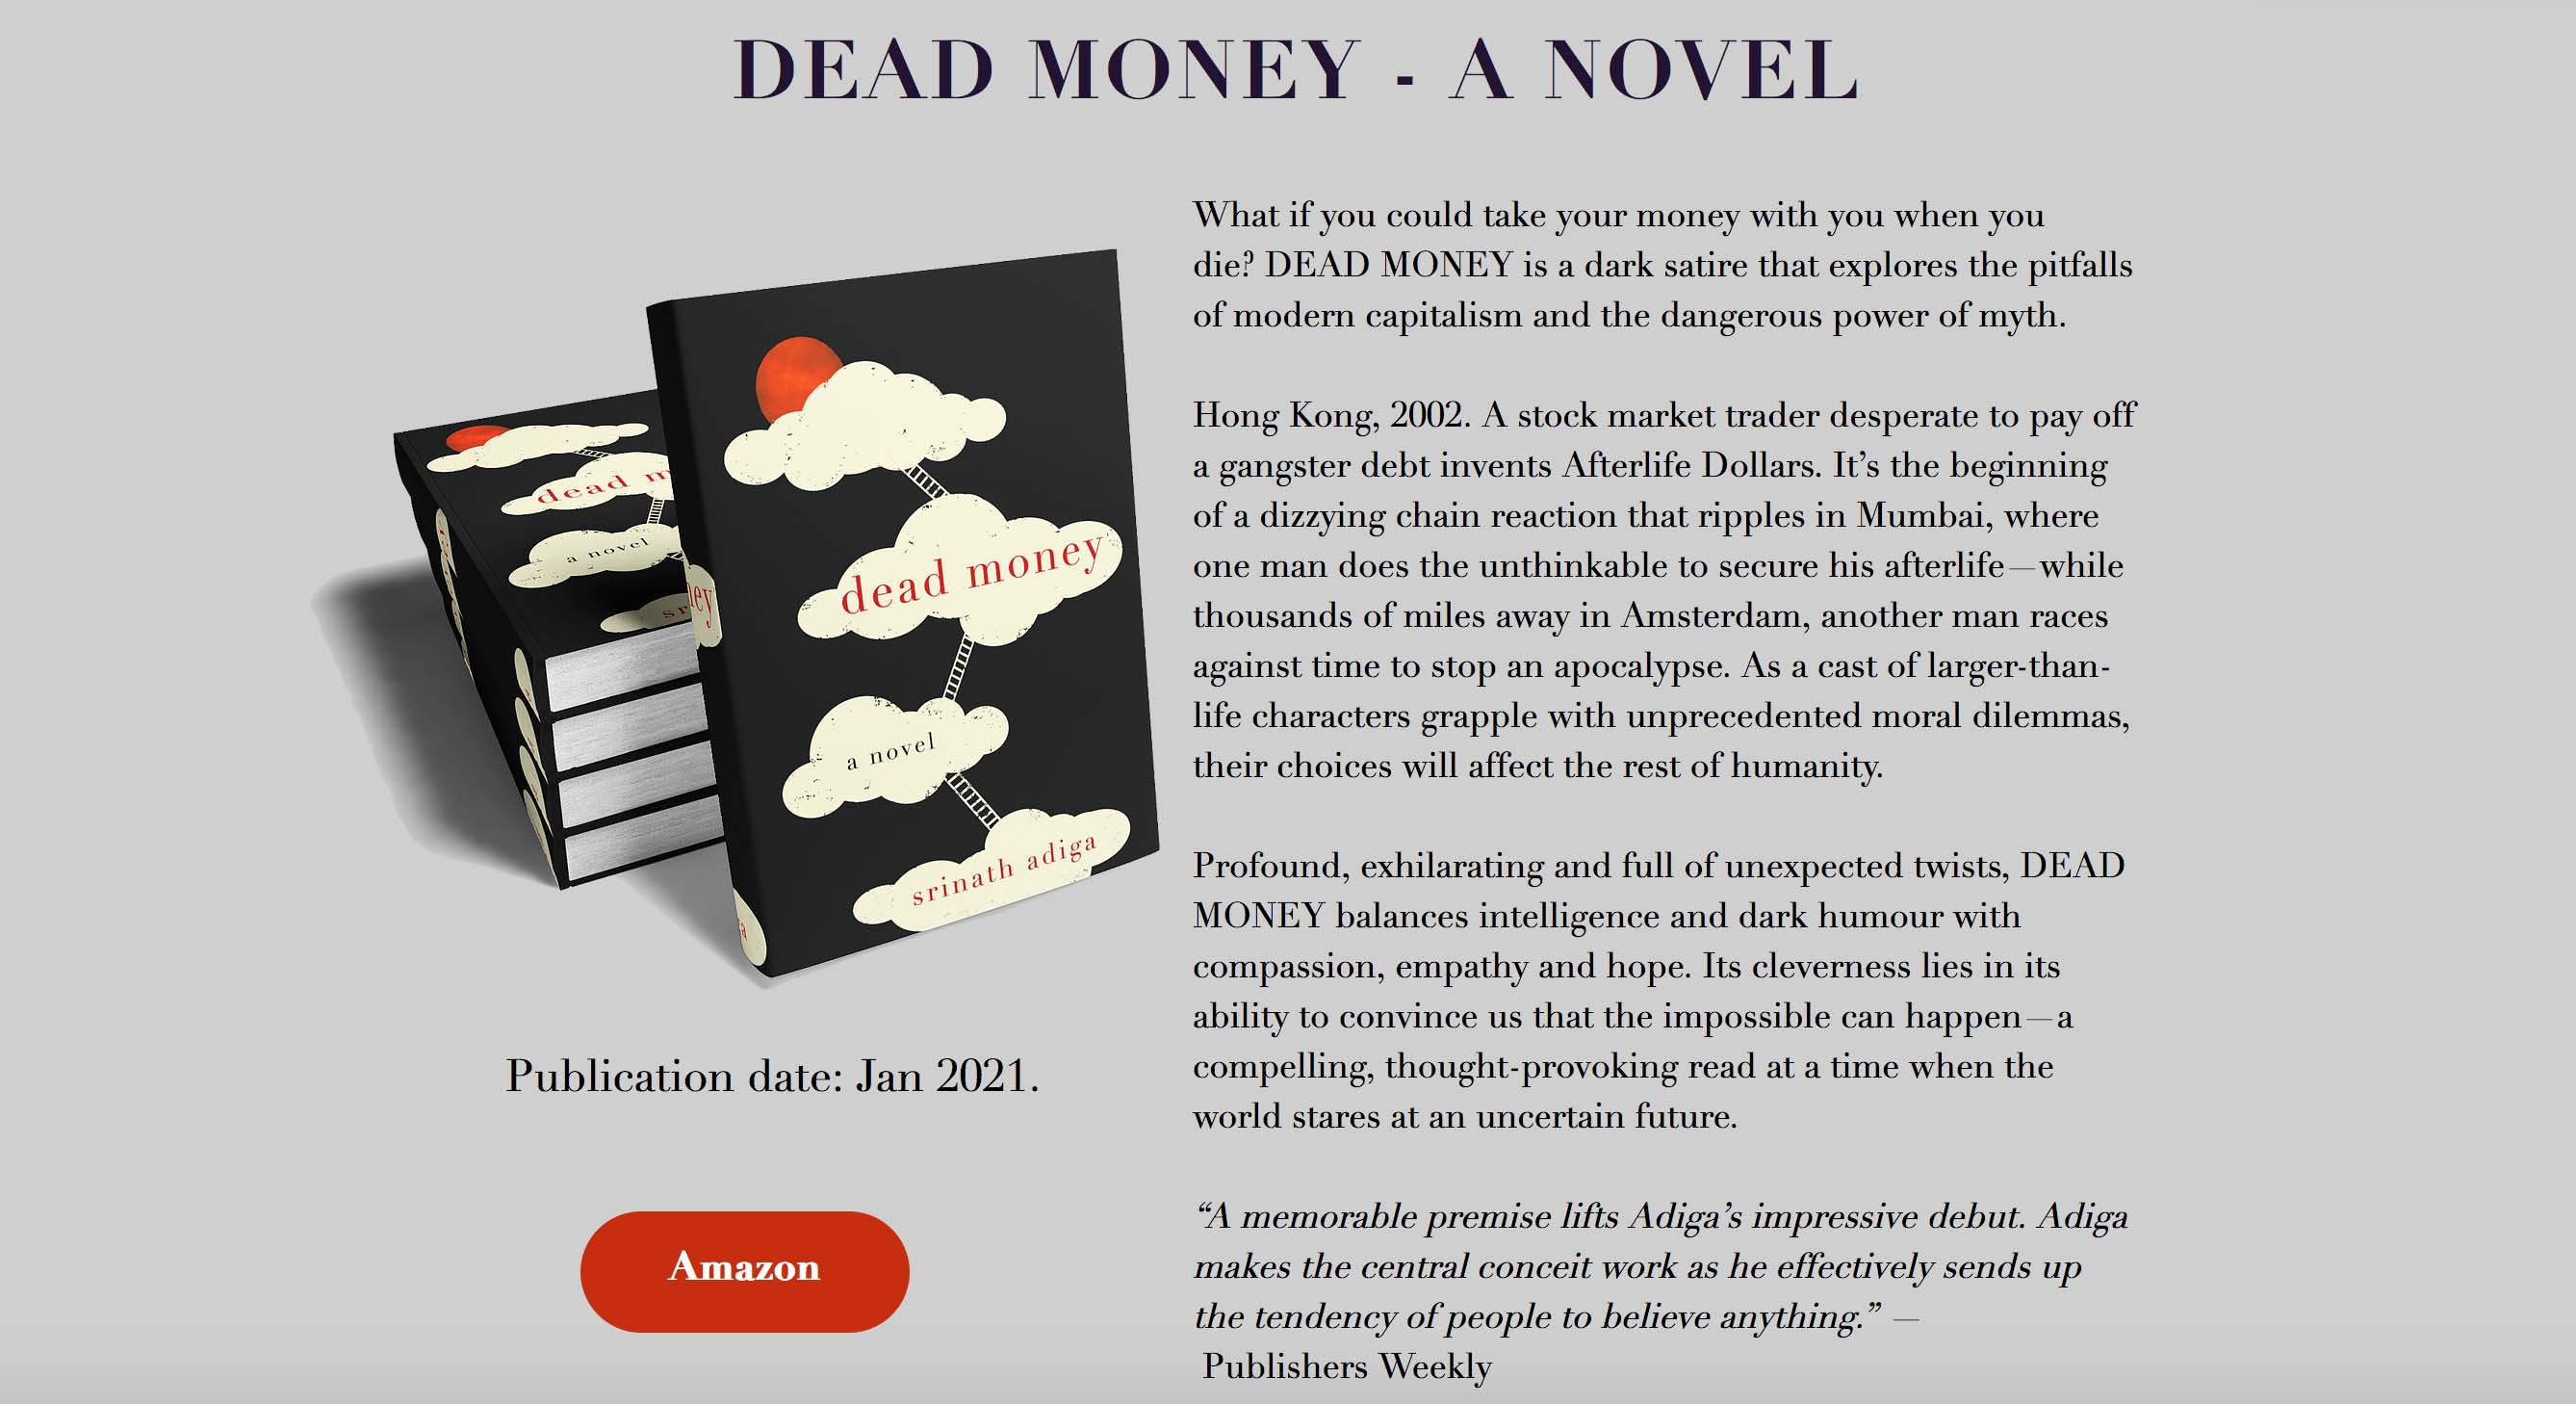 """Aussie expat creative Srinath Adiga's first novel 'Dead Money' published: """"He effectively sends up the tendency of people to believe anything."""""""